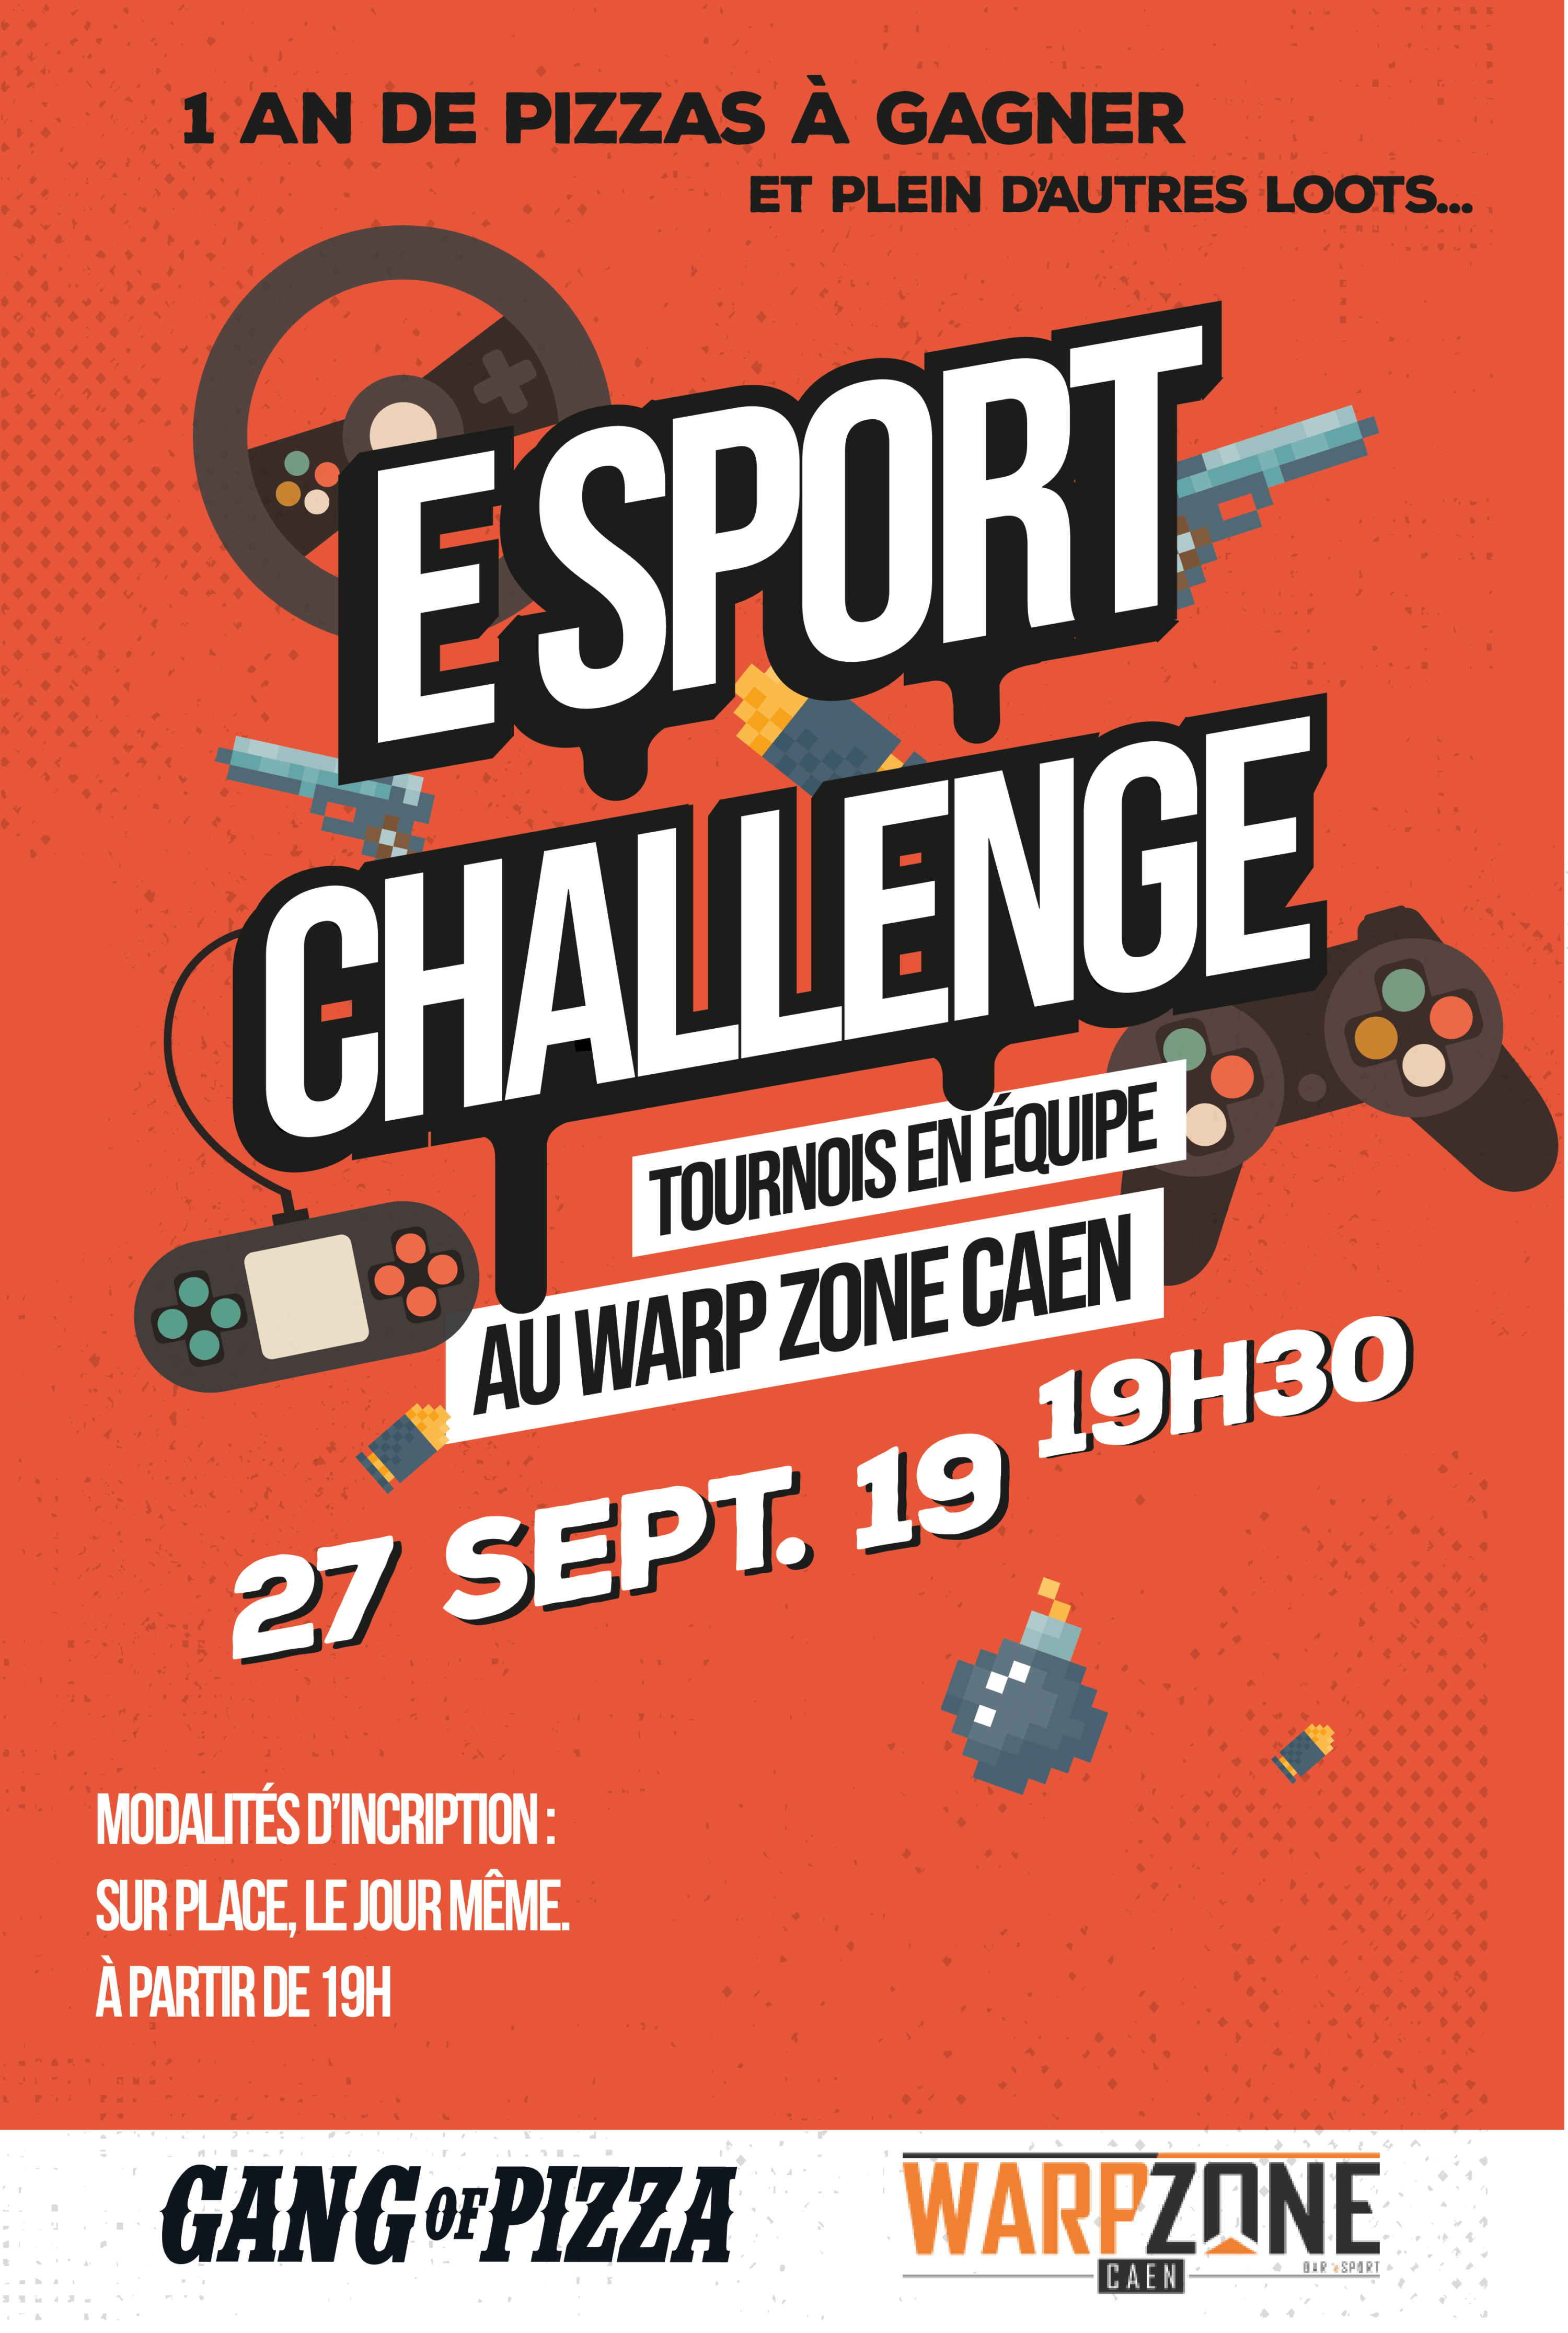 Esport challenge warp zone 2019 gang of pizza